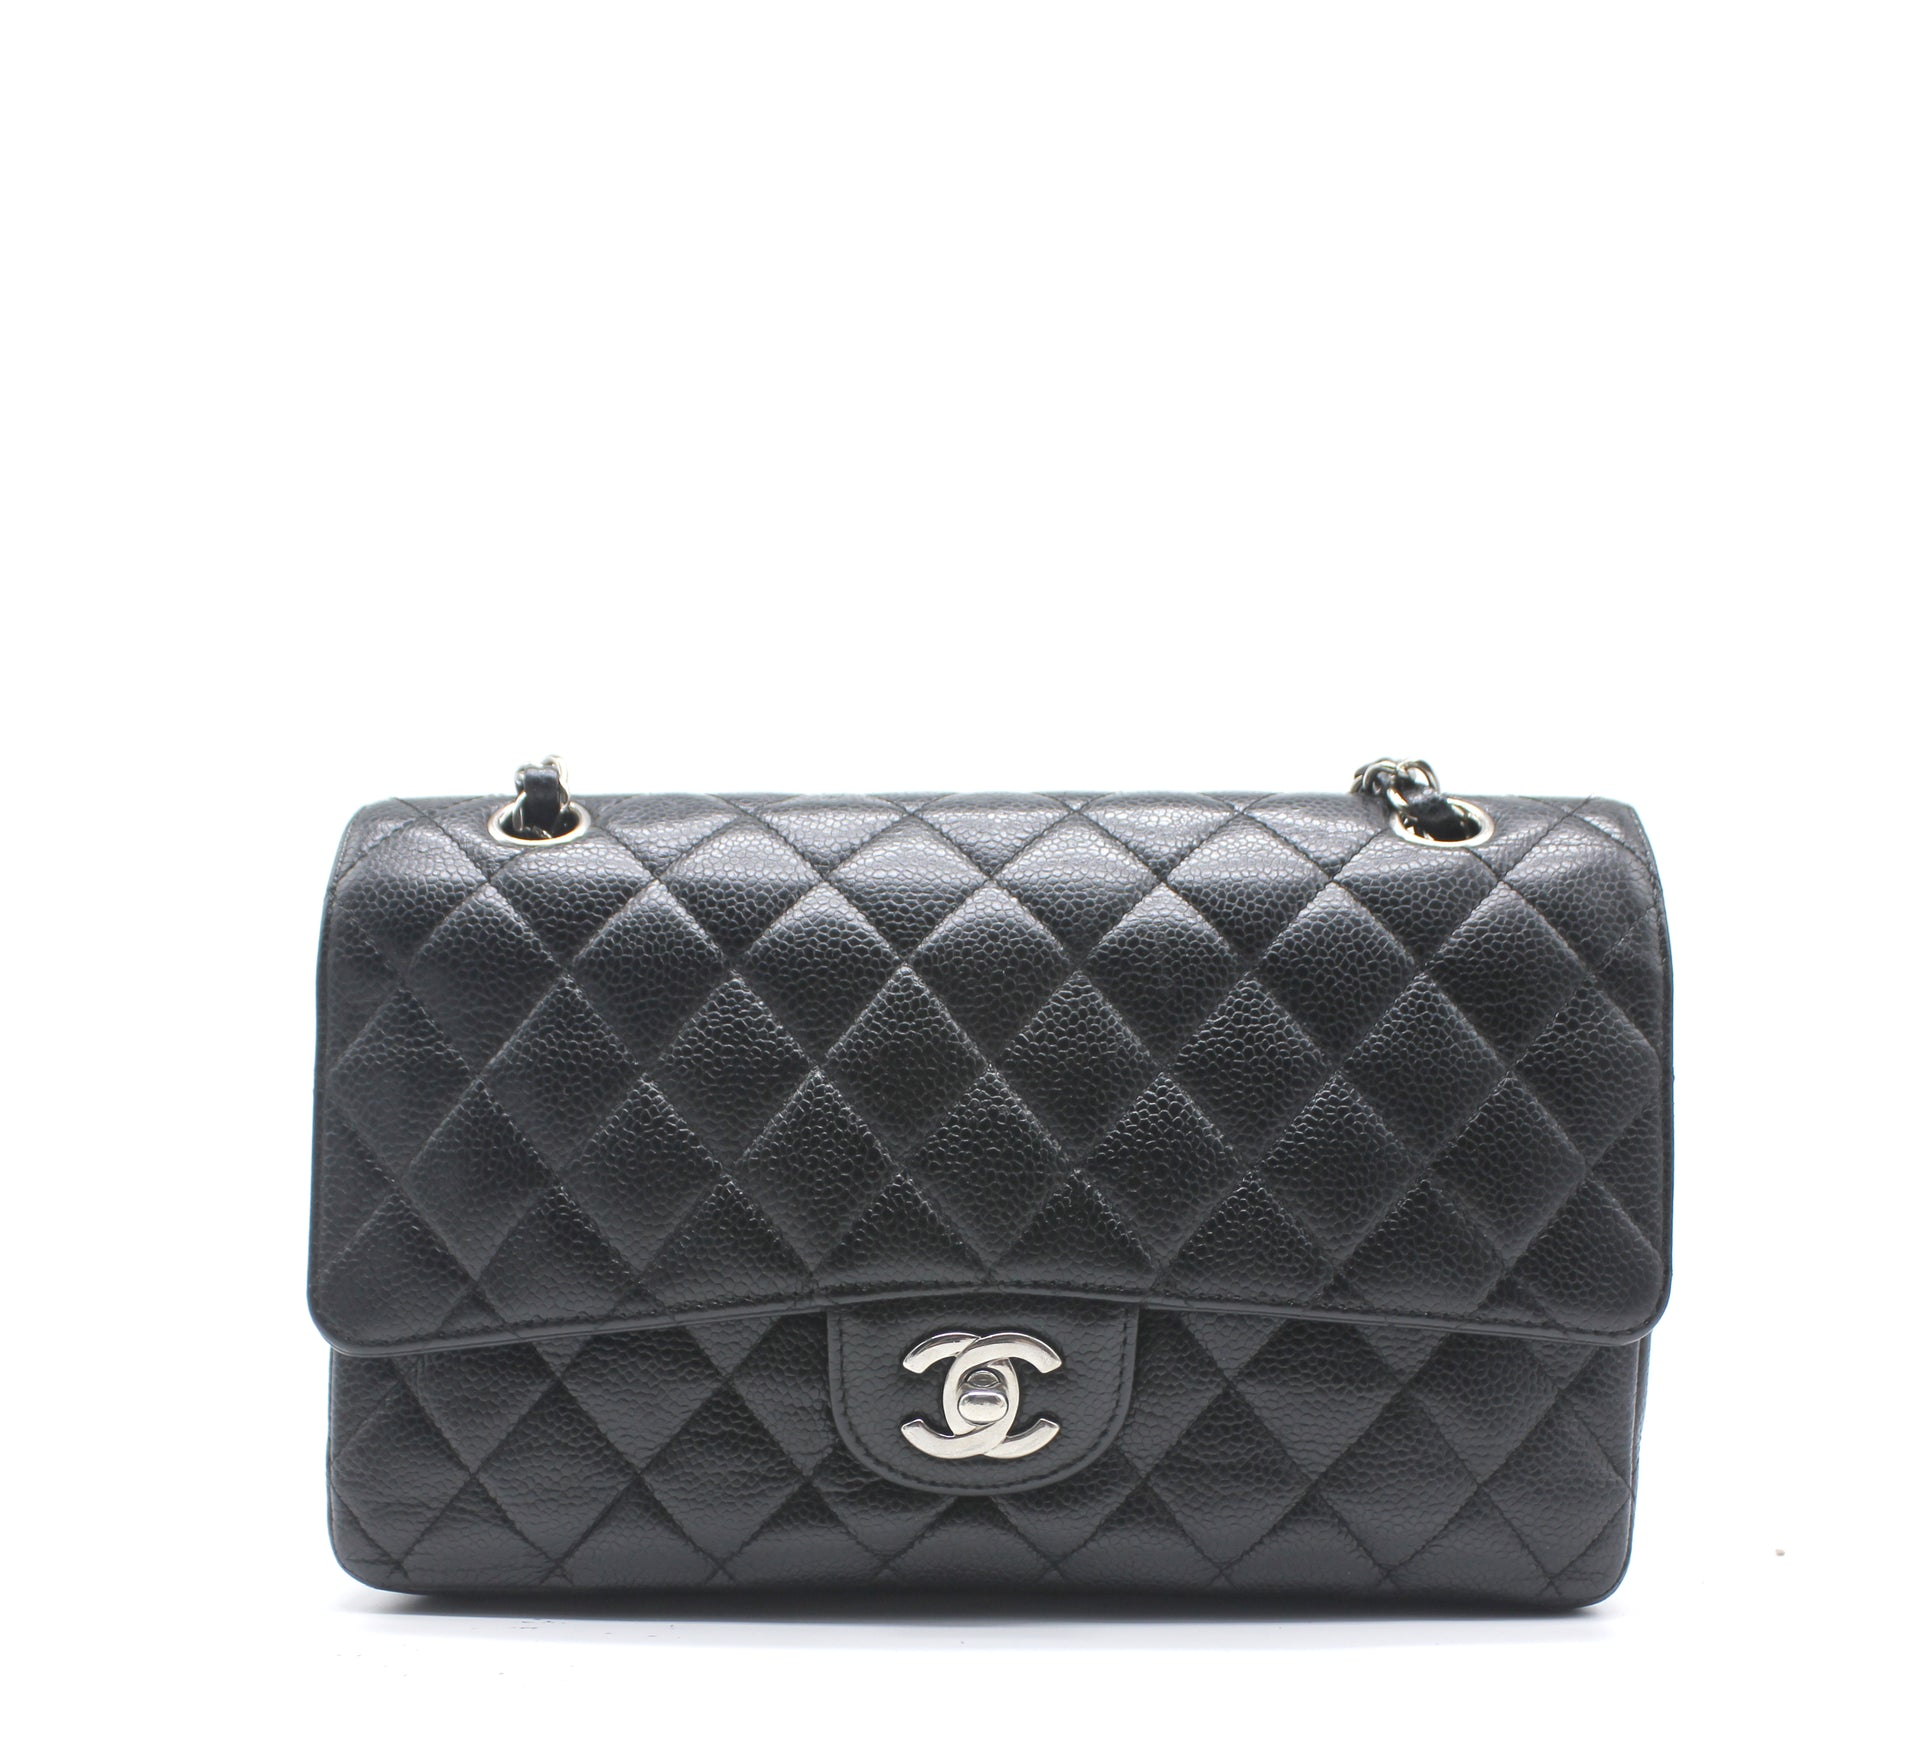 86a37718185236 Chanel Black Quilted Caviar Leather Classic Double Flap Bag – STYLISHTOP